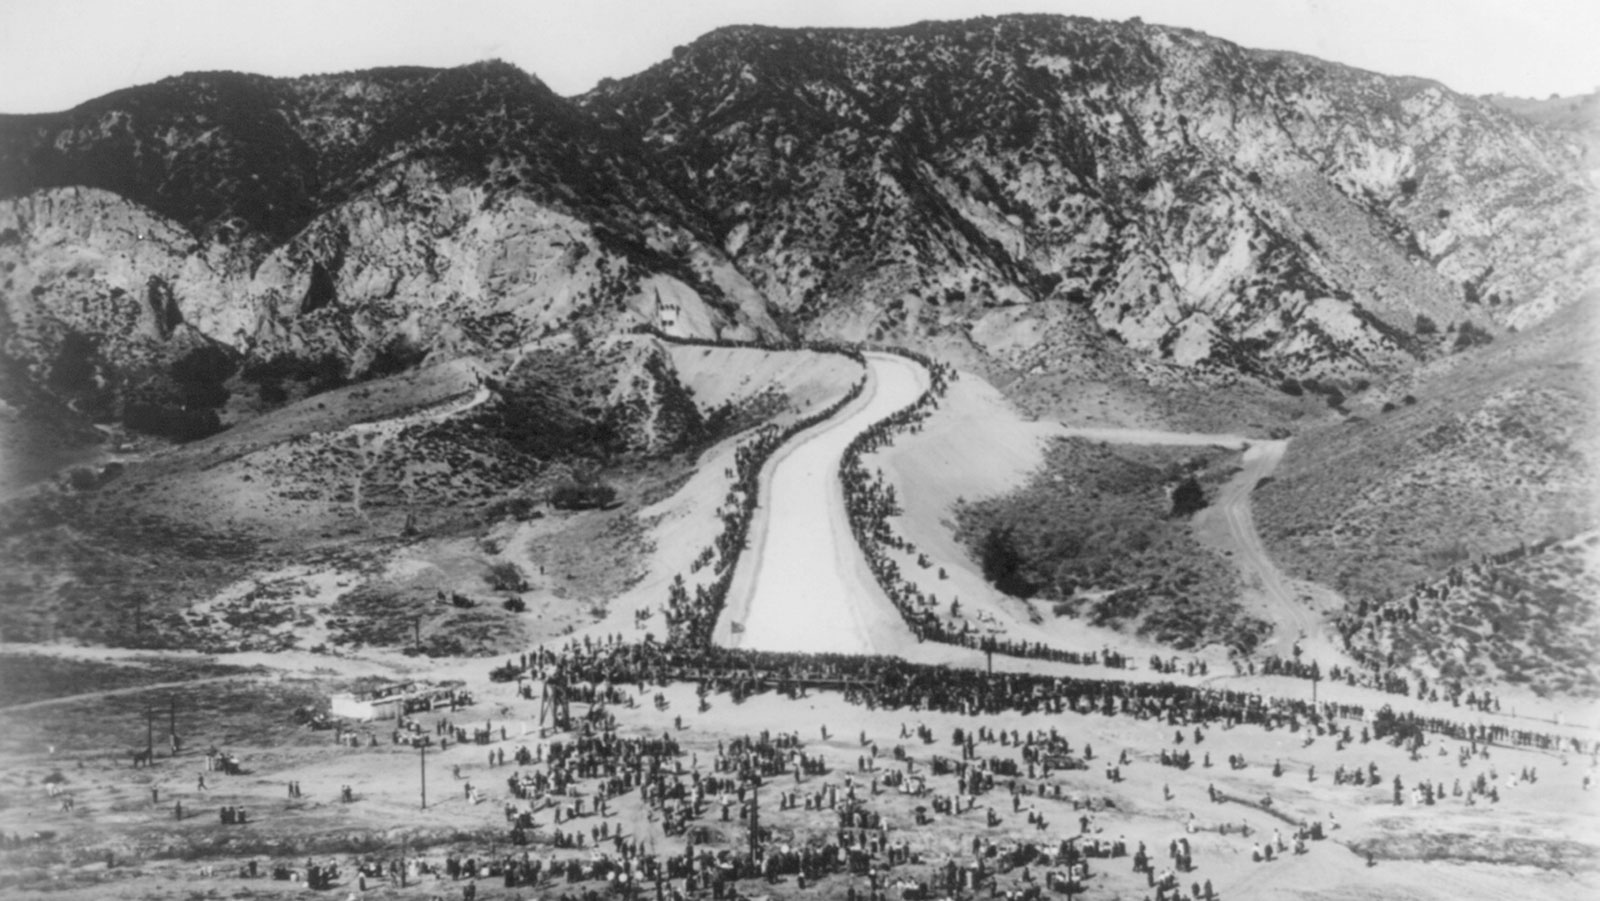 L.A. Aqueduct Celebration, Nov. 5th, 1913 at the Cascades